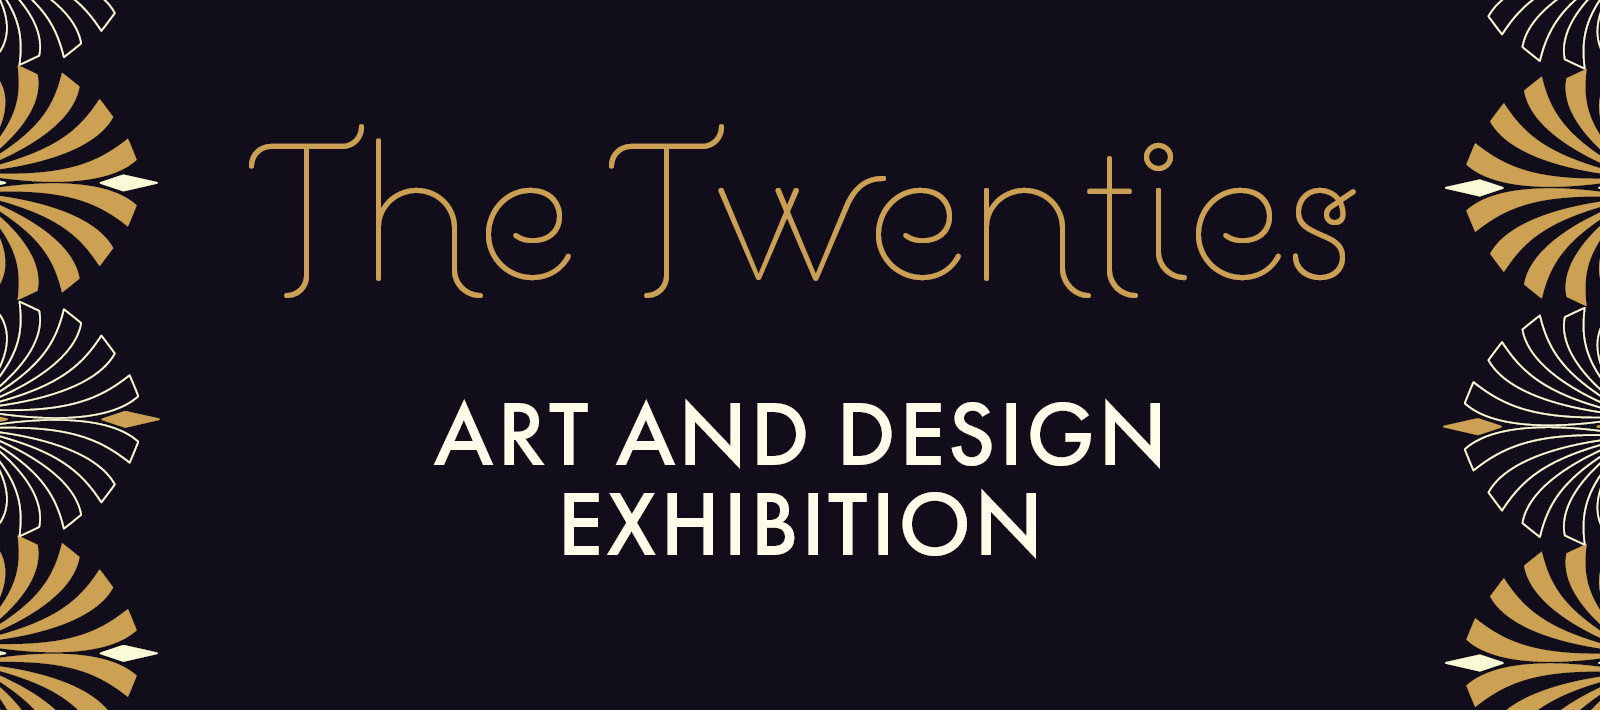 The Twenties is an exhibition of art and design inspired by the radical decade of the 1920s - launching in February 2020 at Hinkler Hall of Aviation.